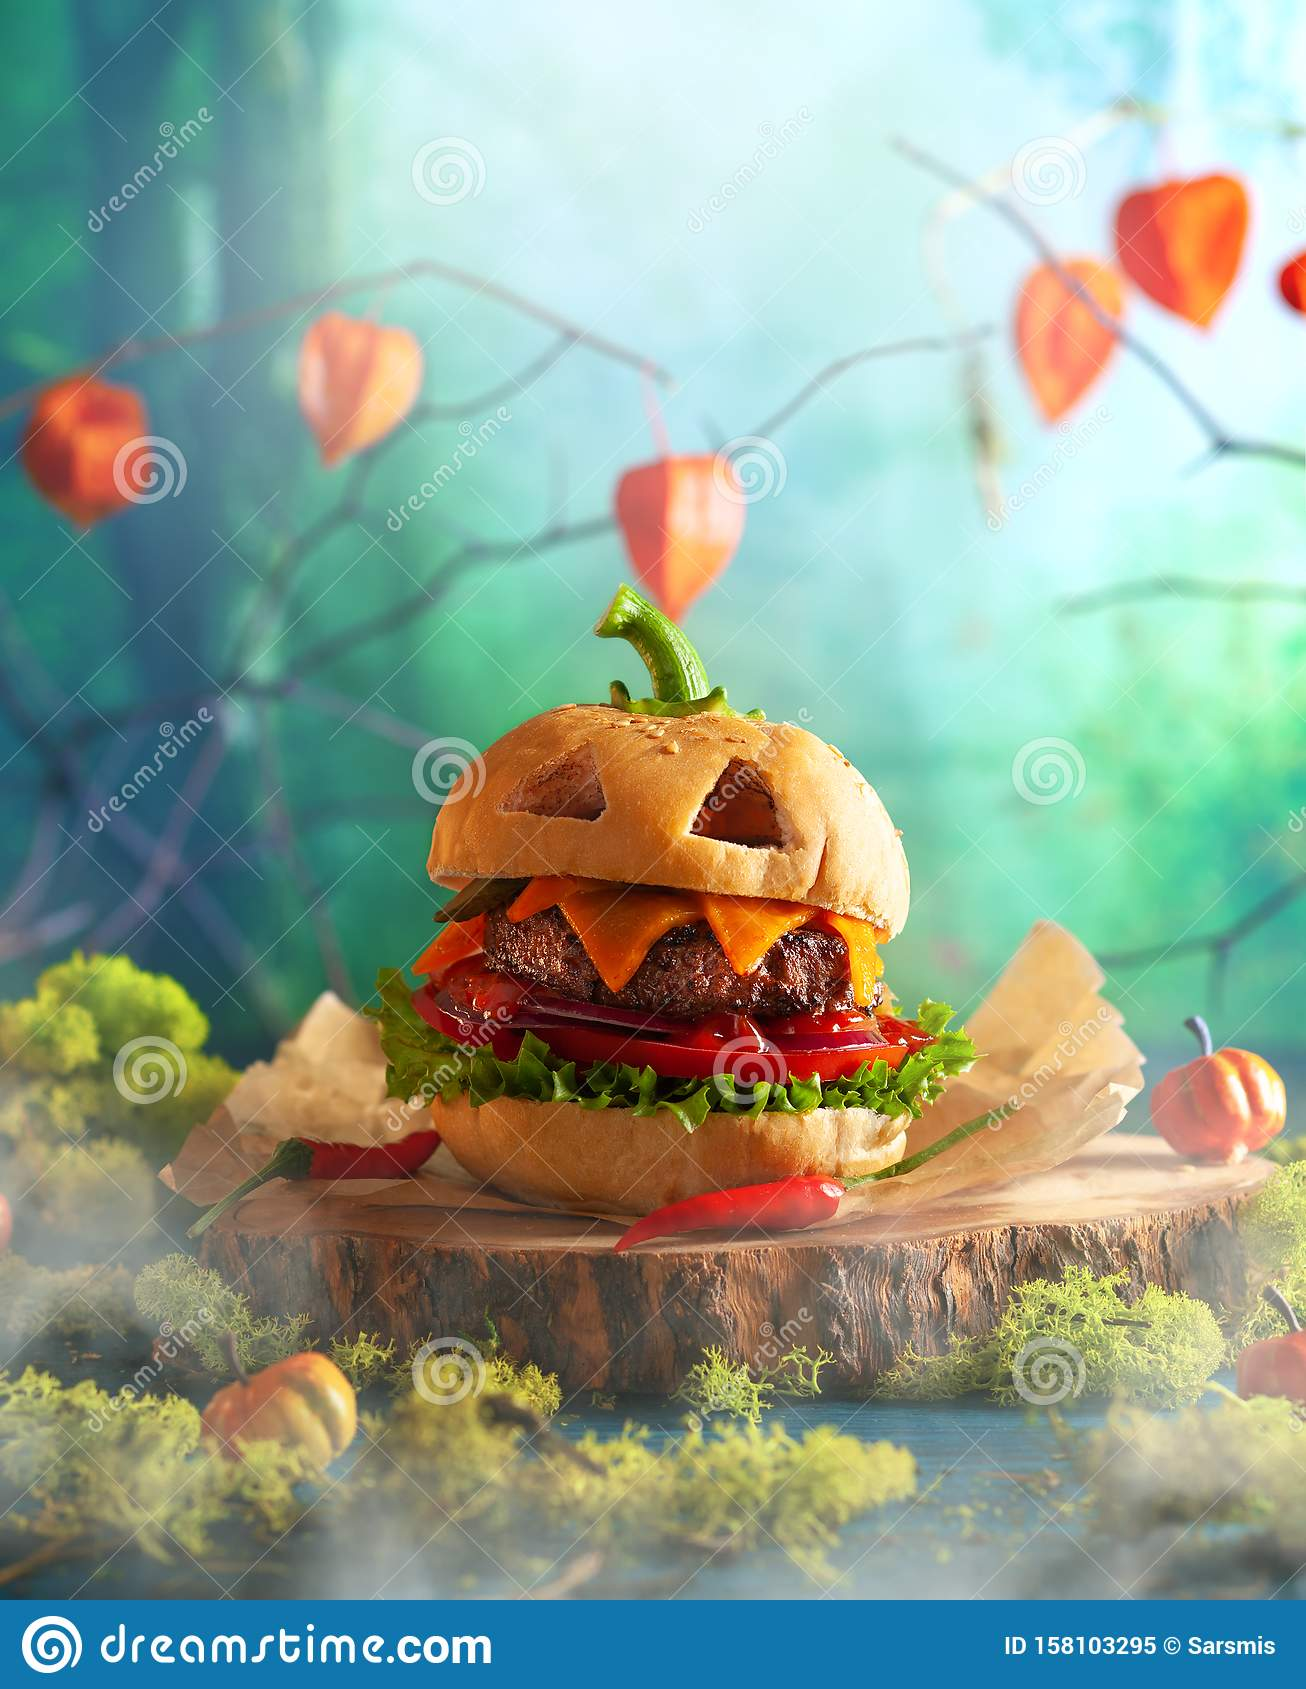 Halloween party burger in shape of scary pumpkin on natural wooden board. Halloween food concept